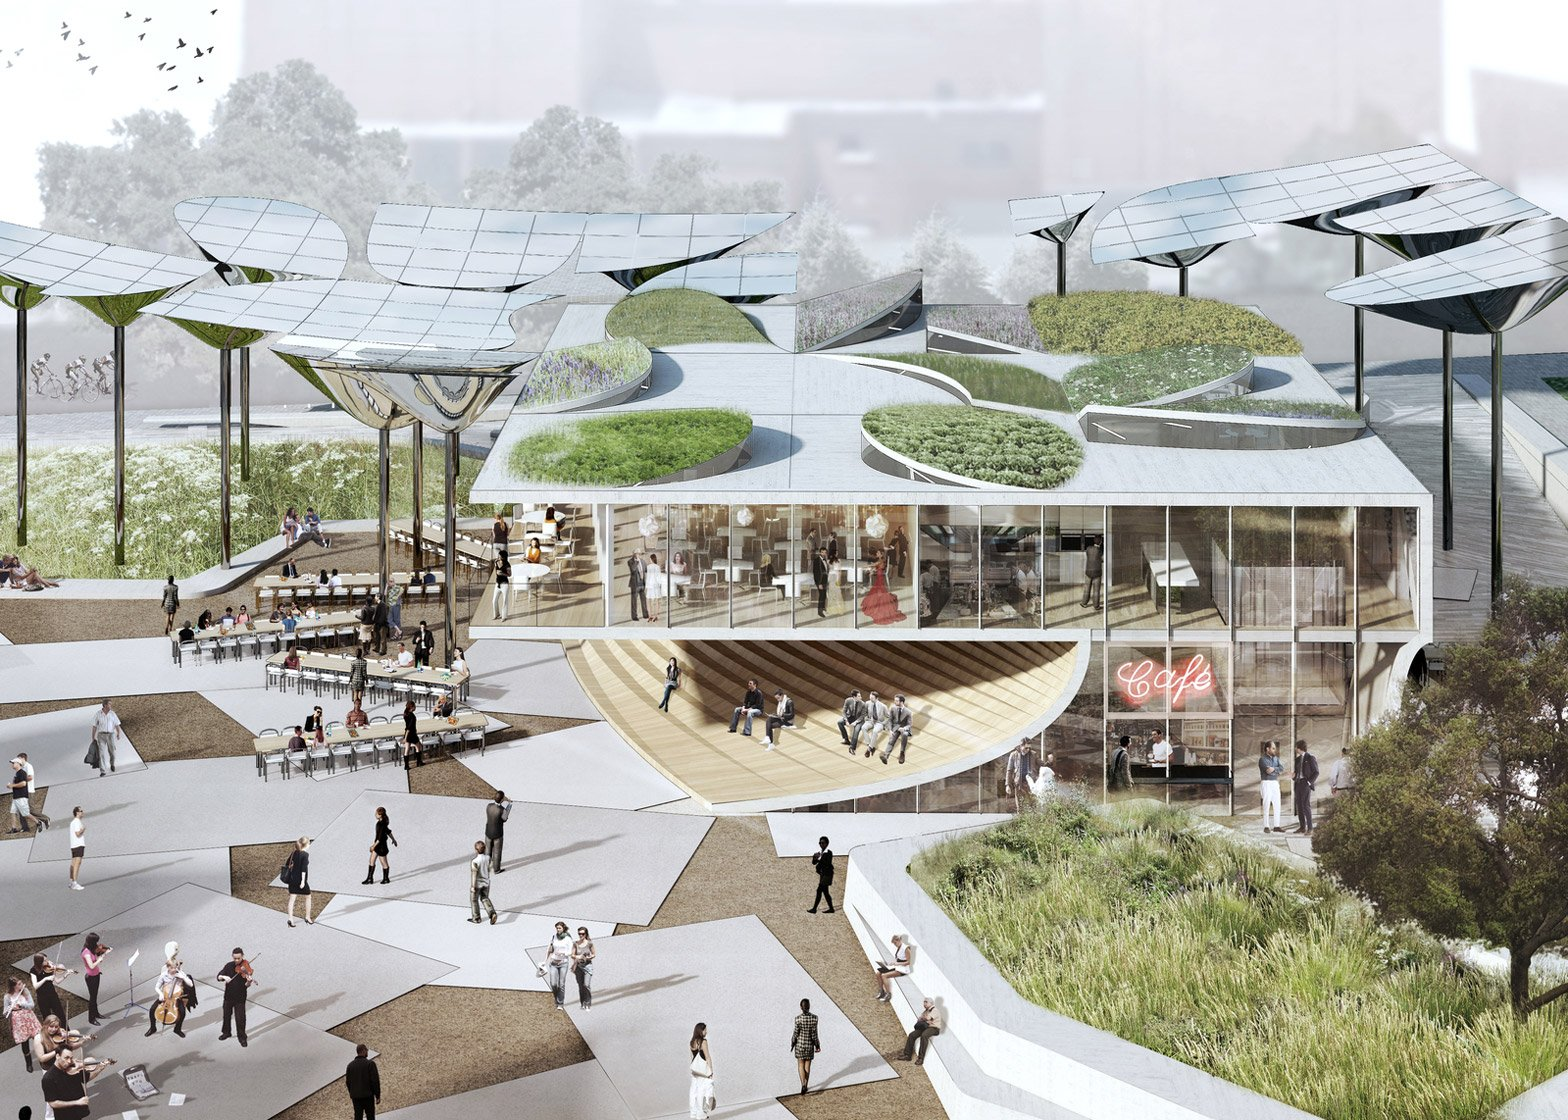 FAB Civic Center park proposal  by OMA, Mia Lehrer + Associates and IDEO